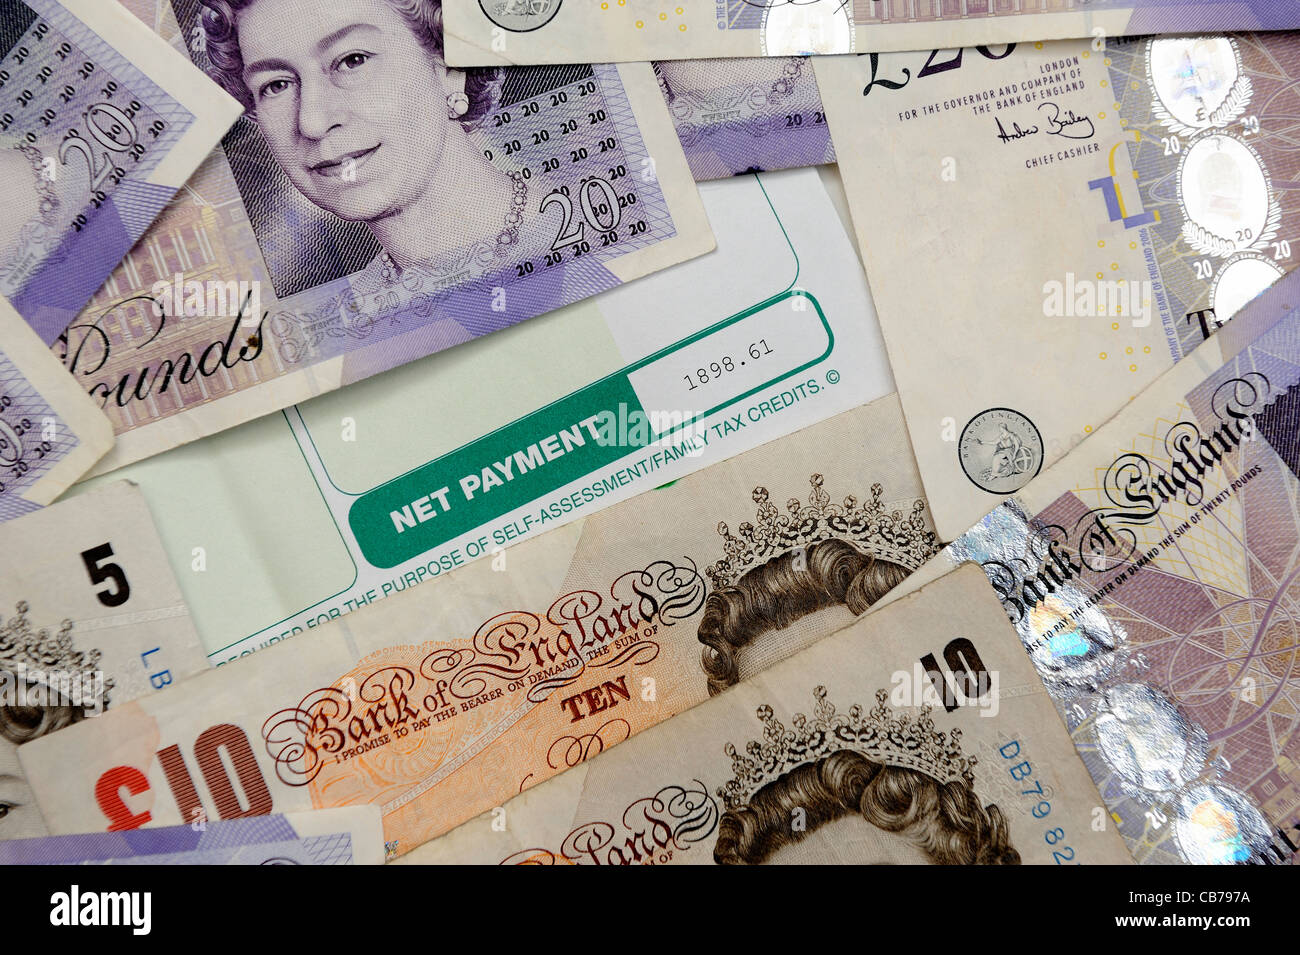 net payment on payslip surrounded by english 10 and 20 pound notes uk - Stock Image